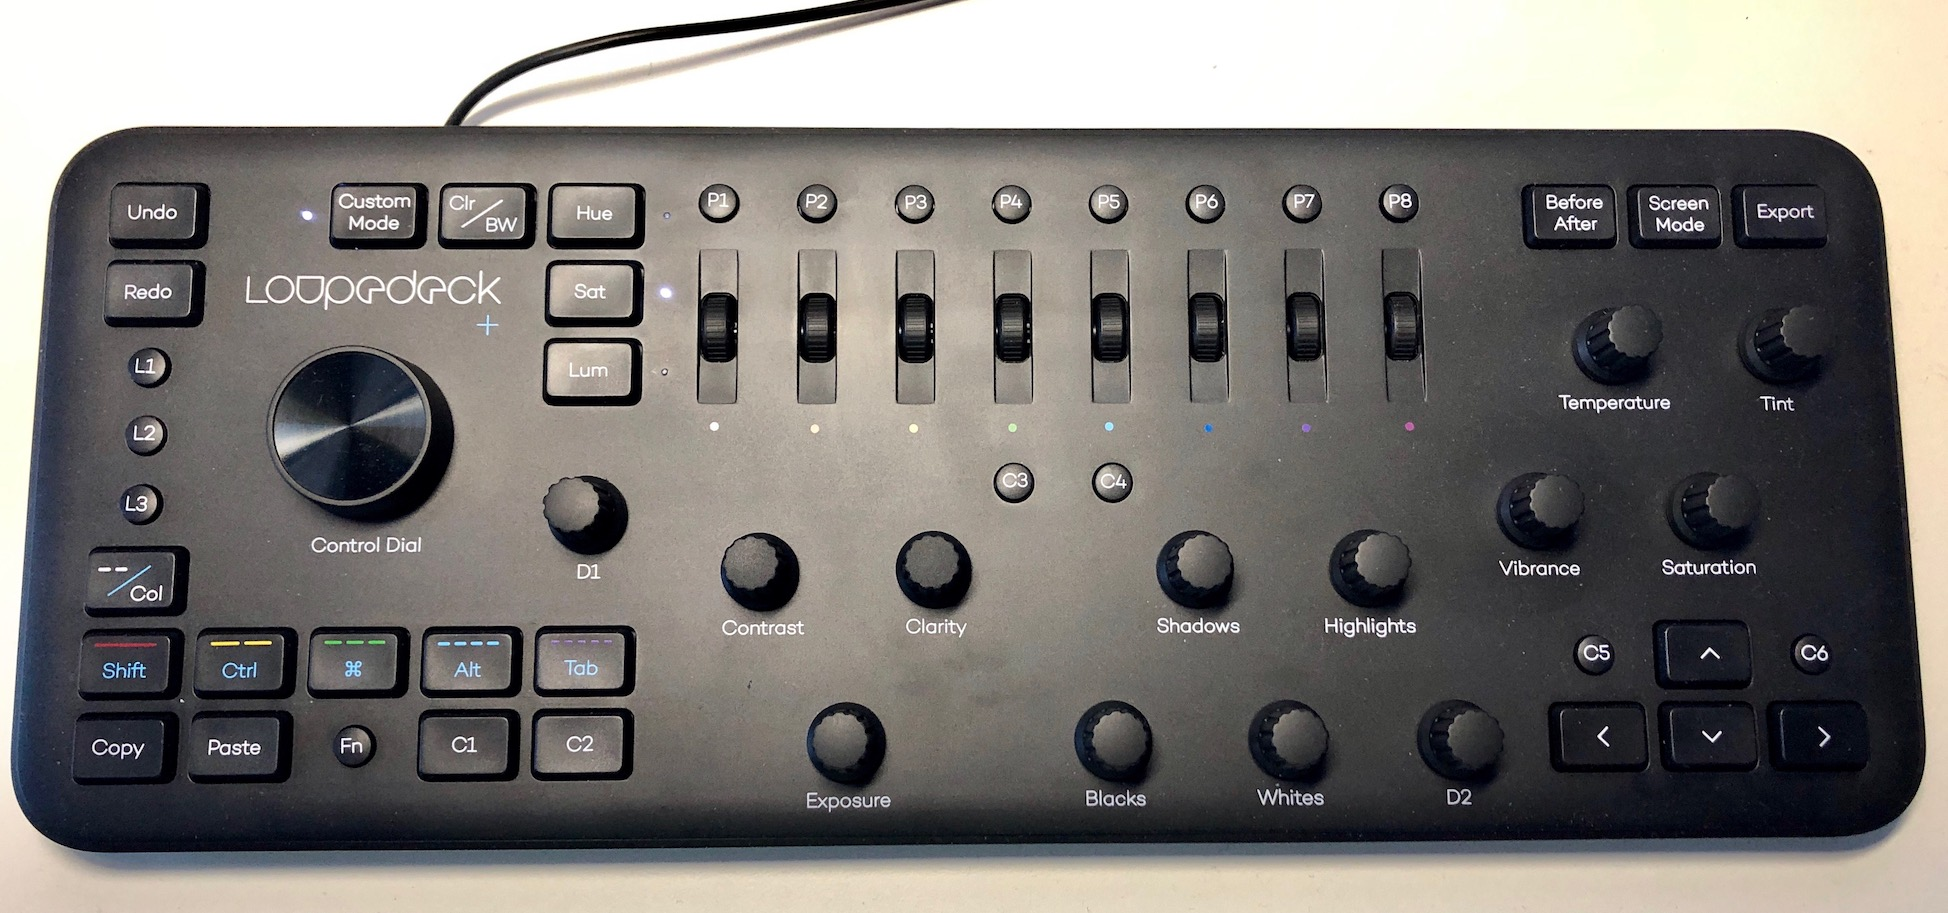 Review: The Loupedeck+ control surface and its Adobe Premiere Pro